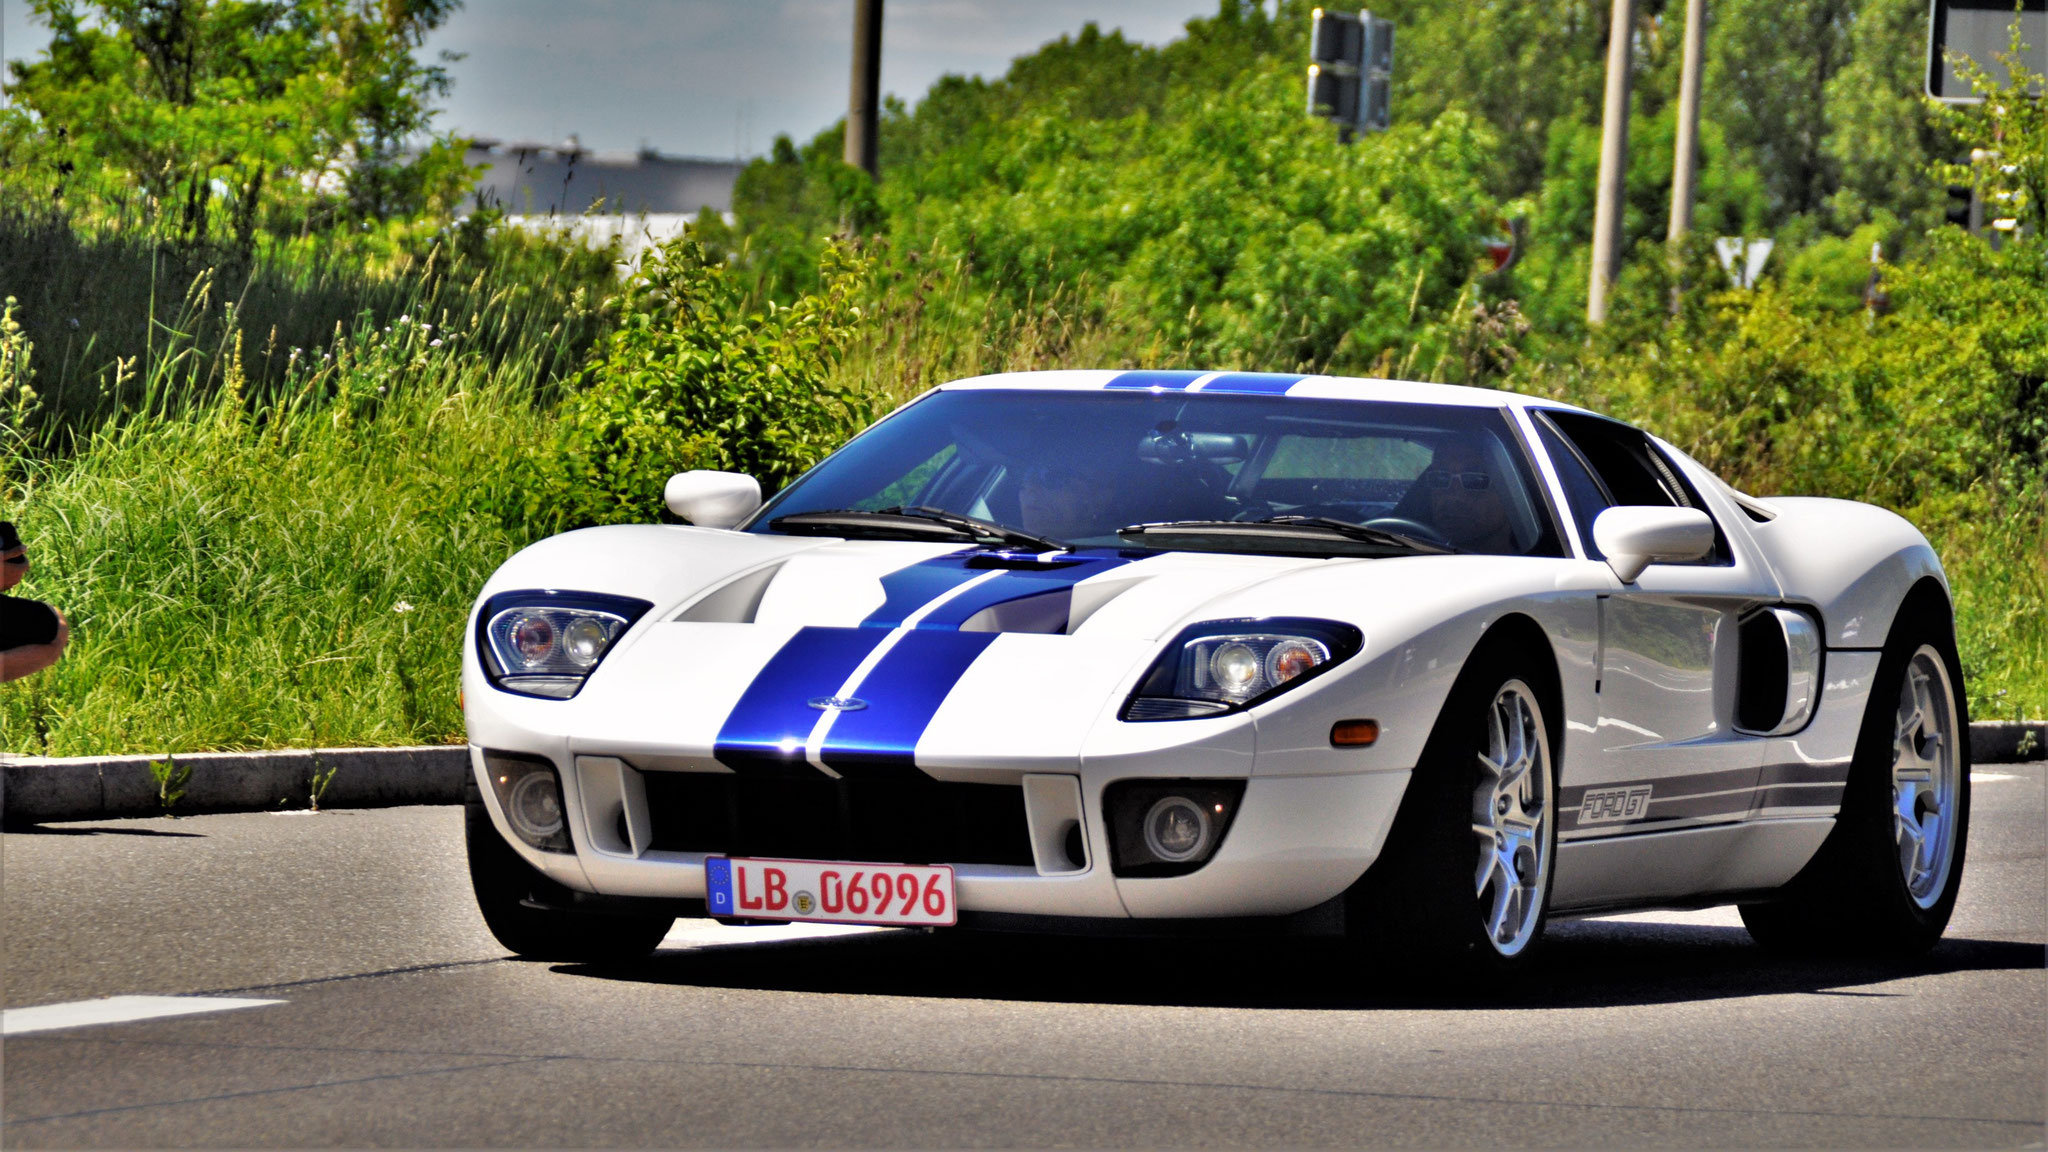 Ford GT - LB-06996